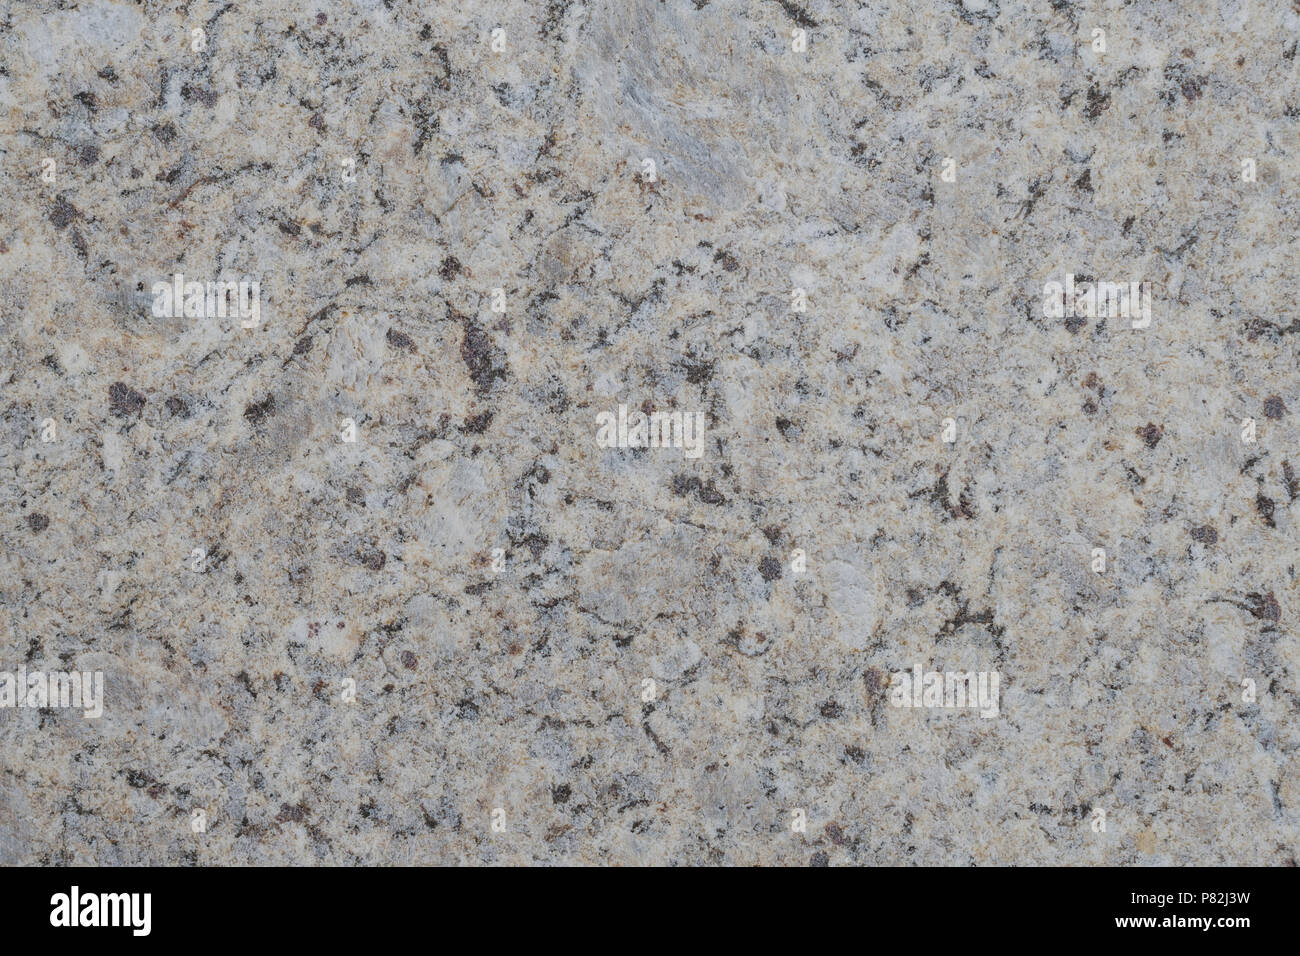 Granite Or Marble Stone Abstract Pattern Texture Background